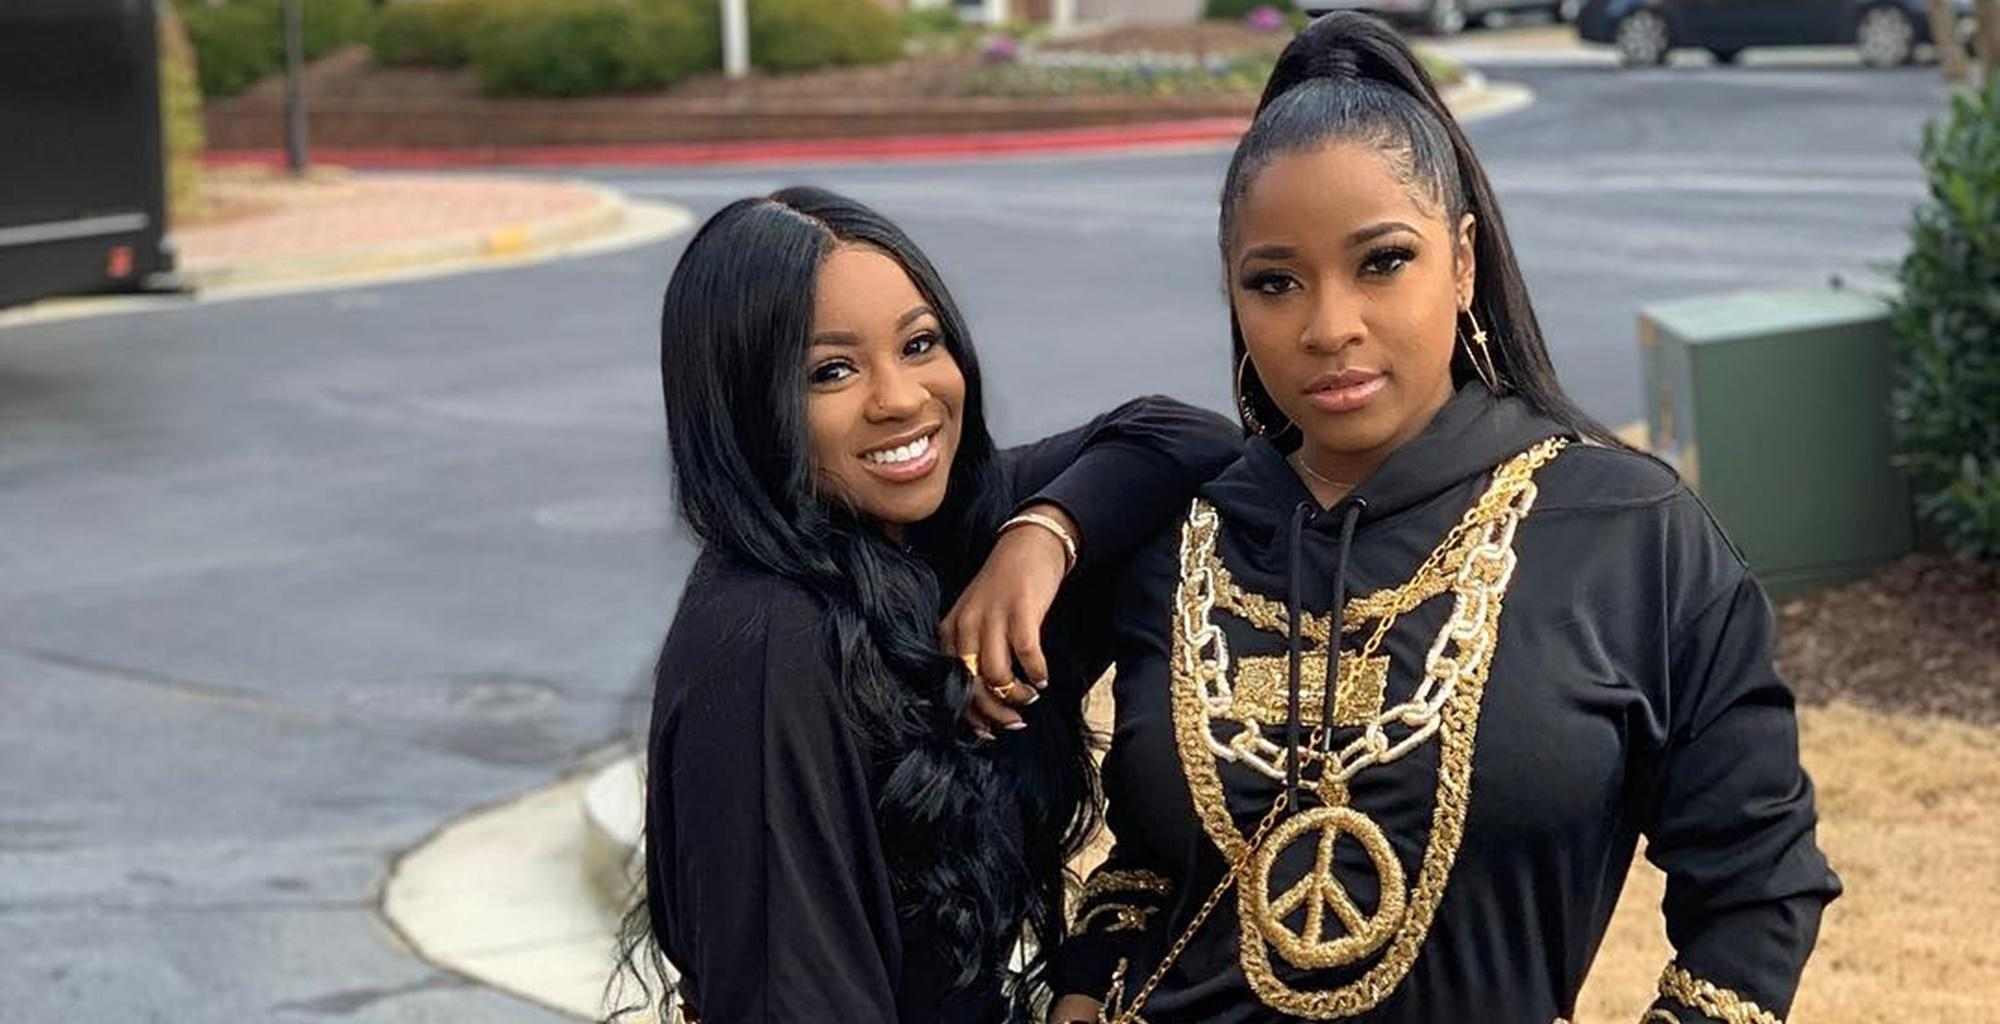 Toya Wright Shows Off Curves In Super Bowl Pictures With Reginae Carter -- Fans Drag Lil Wayne's Ladies For Not Boycotting The Big Event